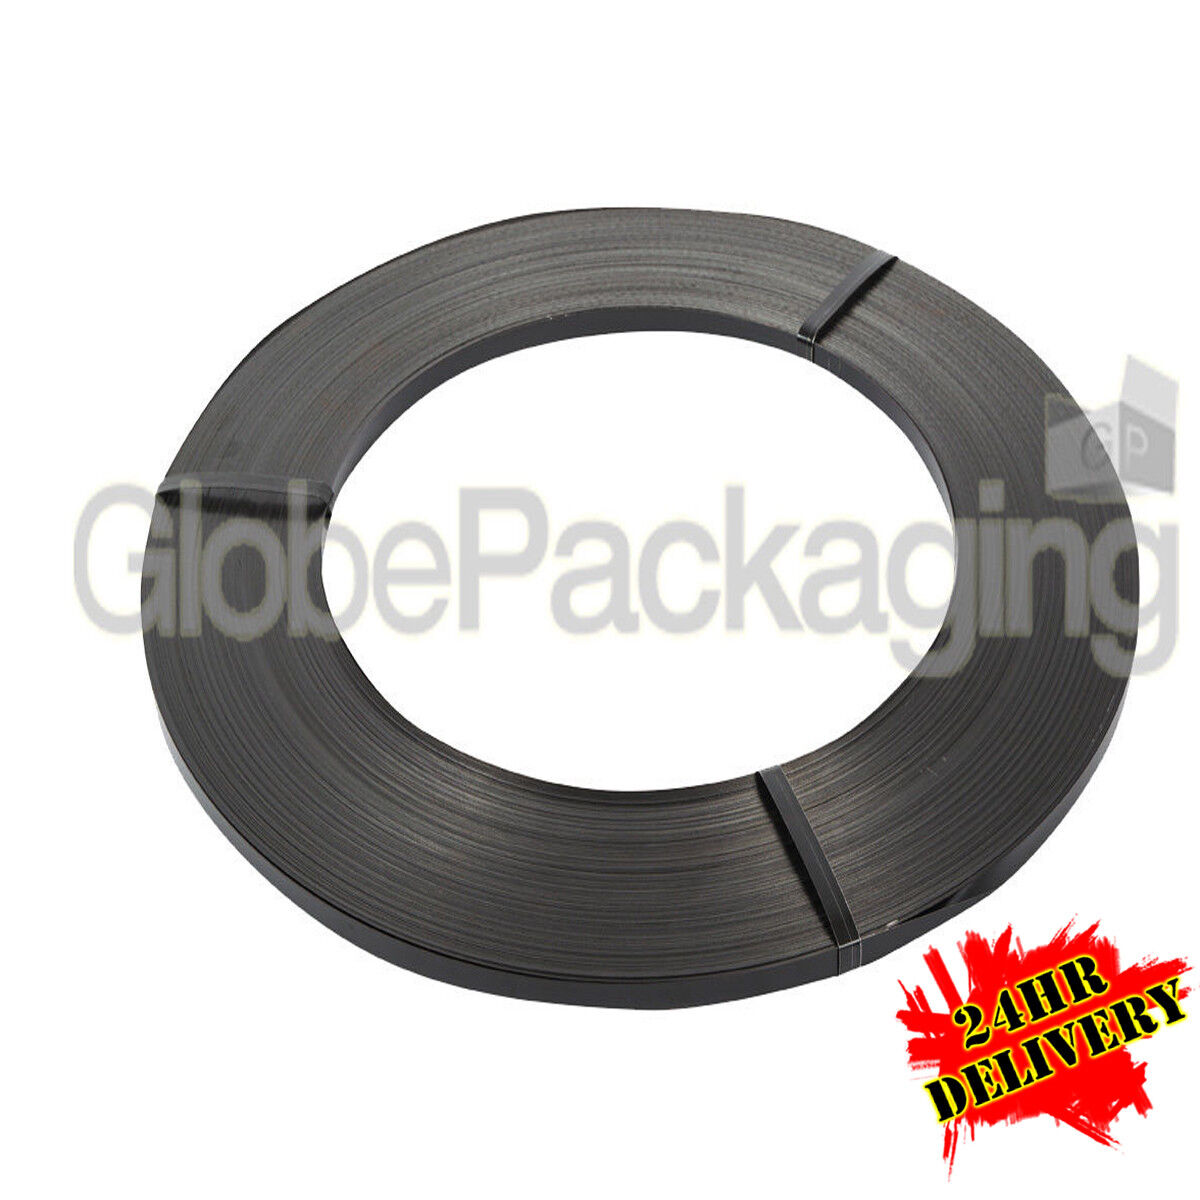 2 x 17KG COILS OF 13mm STEEL PALLET STRAPPING BANDING